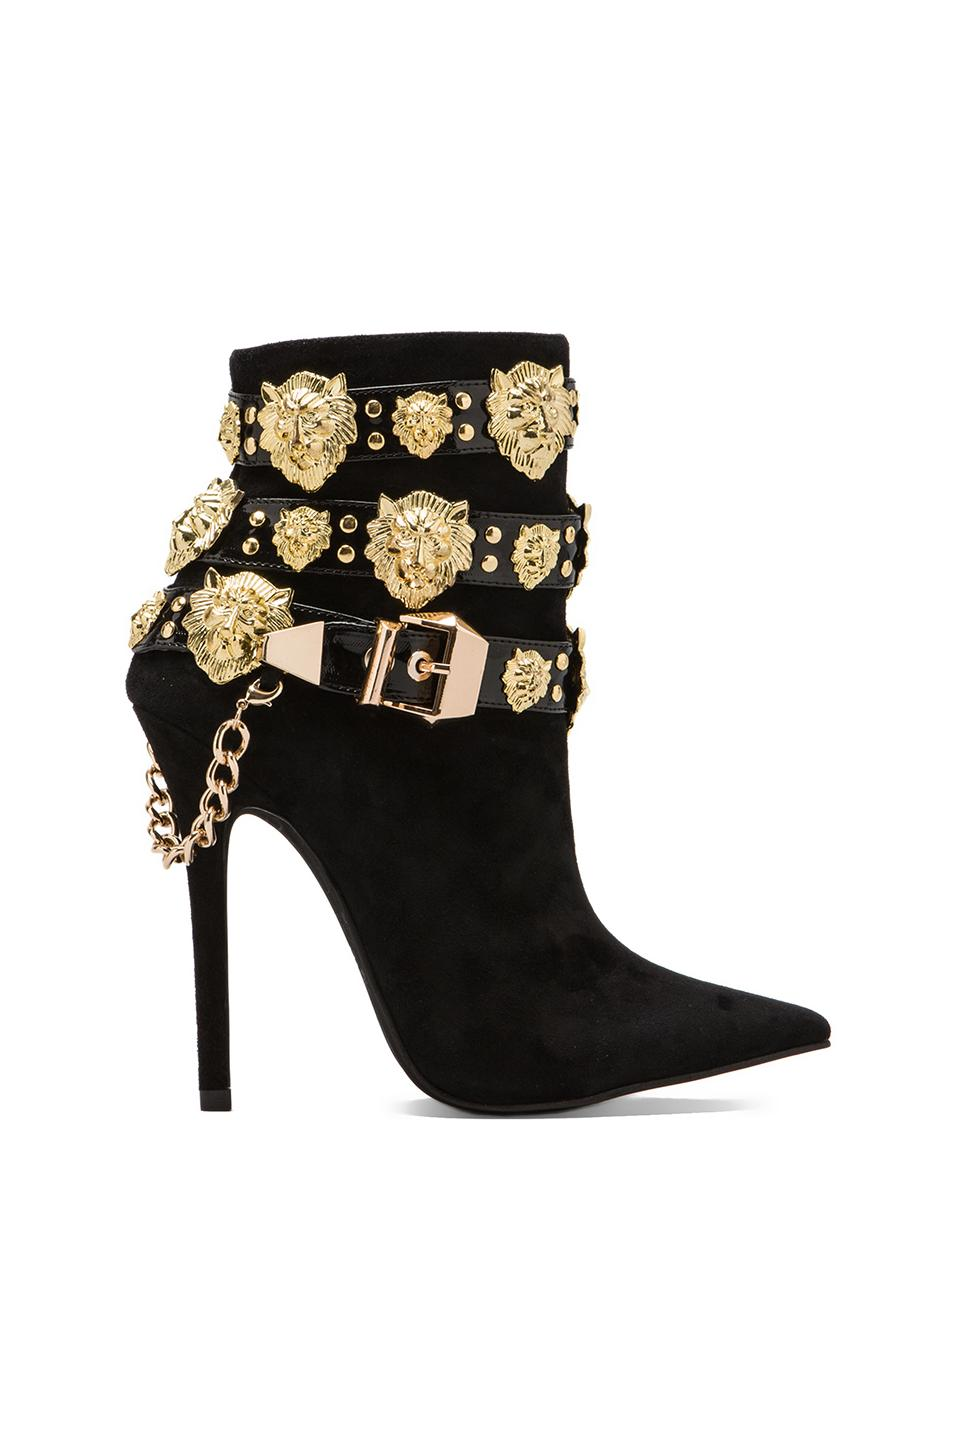 Jeffrey Campbell Rokbar Embellished Boot in Black/Gold